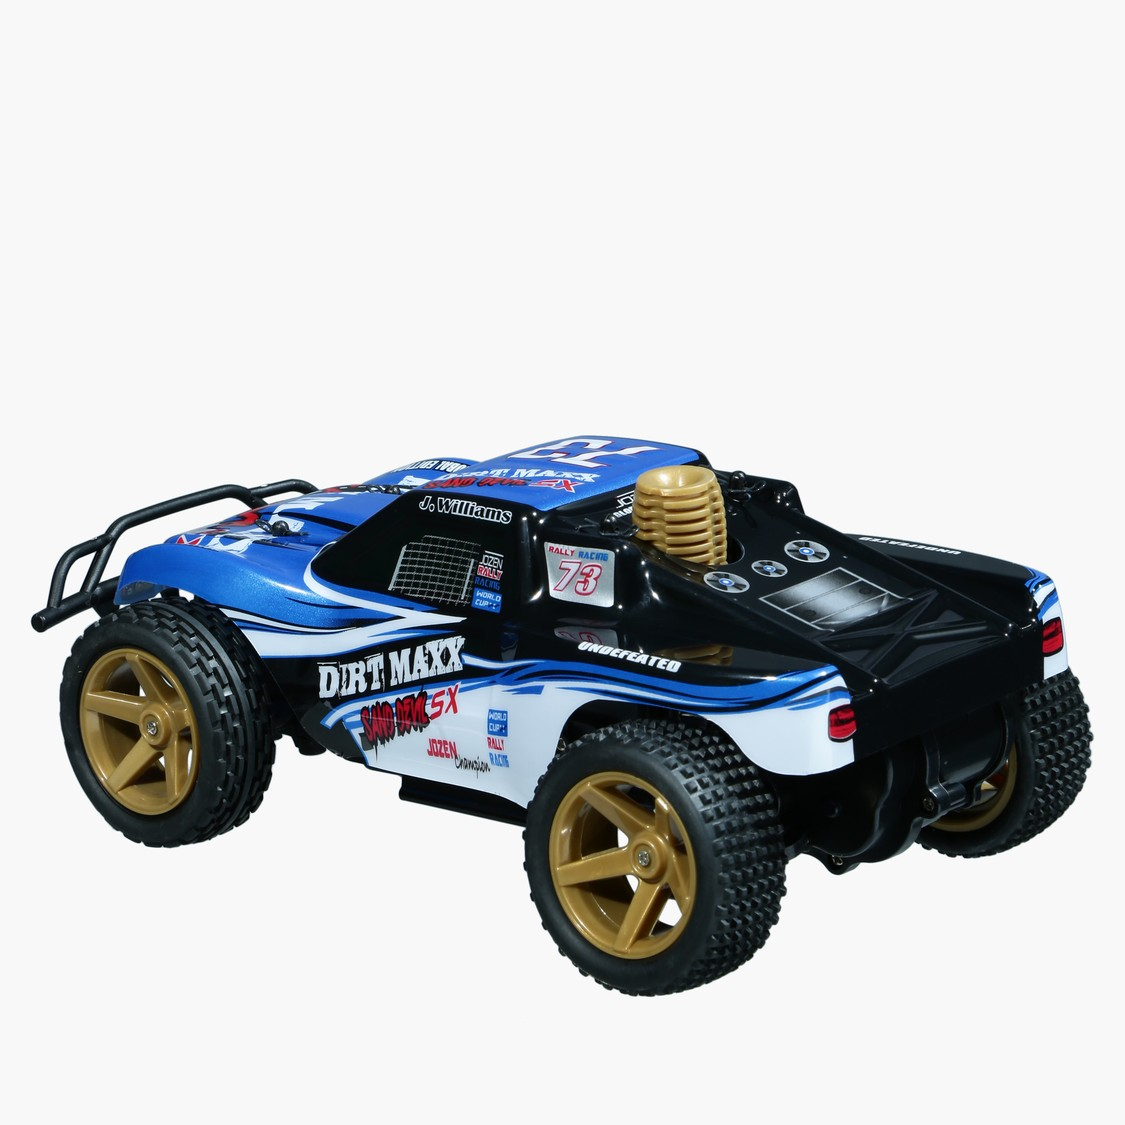 Hexxa Sand Devil Toy Car